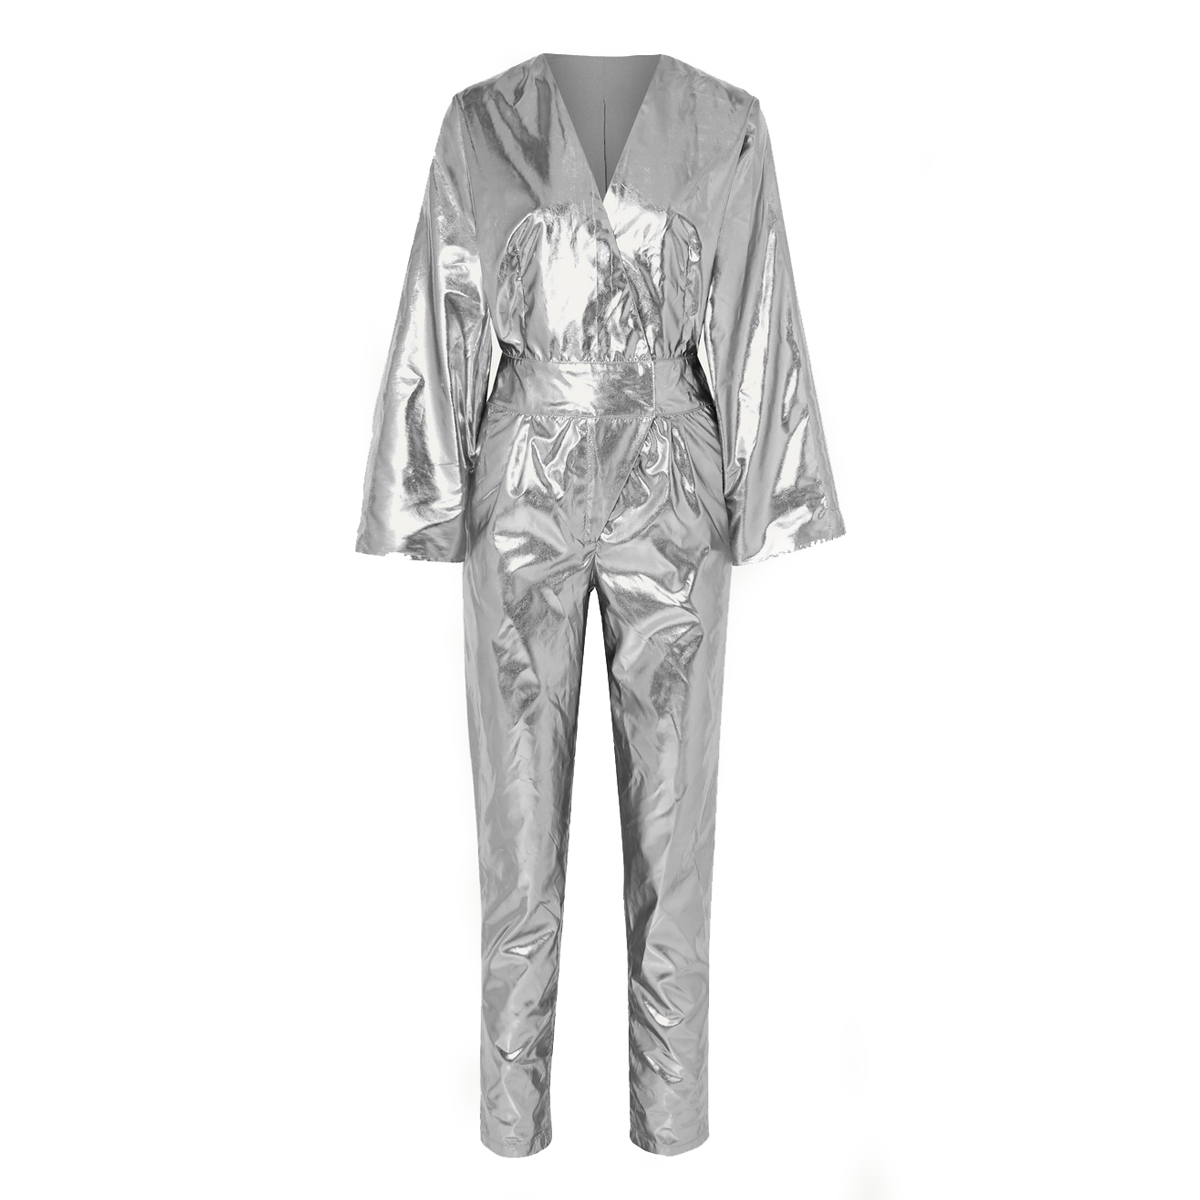 stand studio and pernille teisbaek amiya metallic faux leather jumpsuit